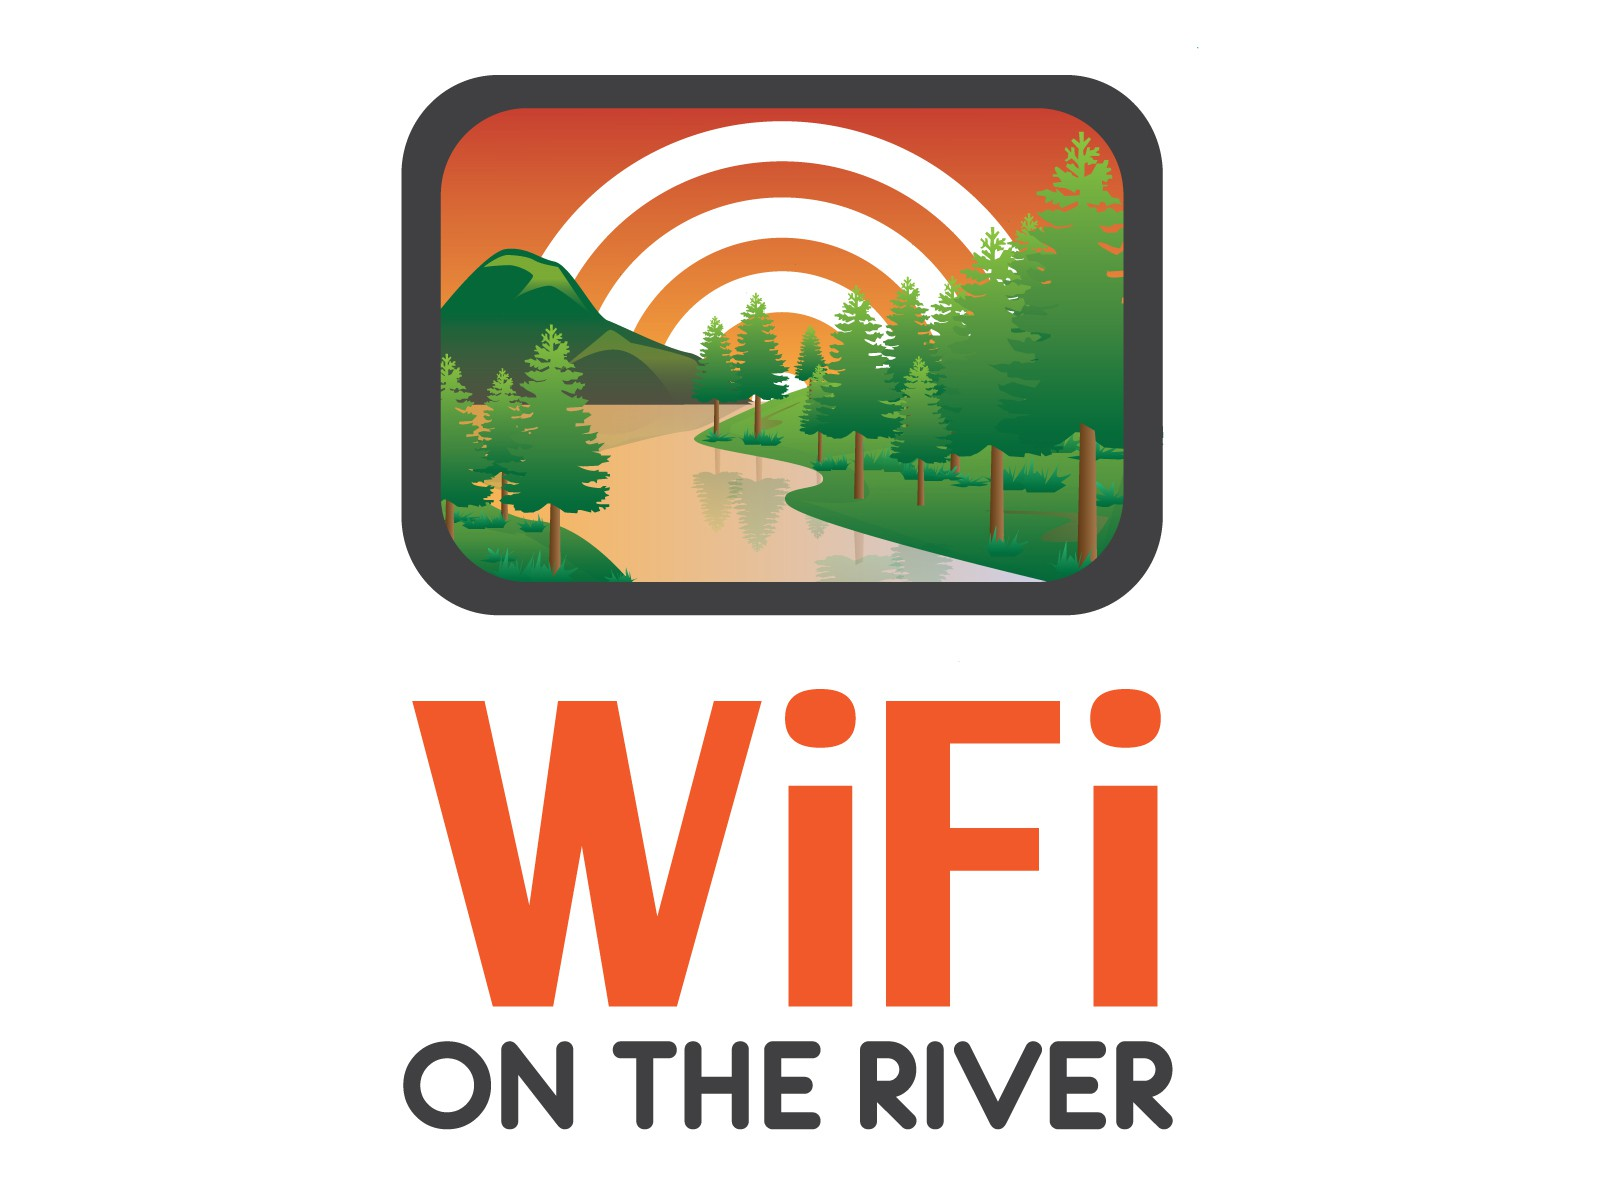 Help WiFi On the River with a new logo